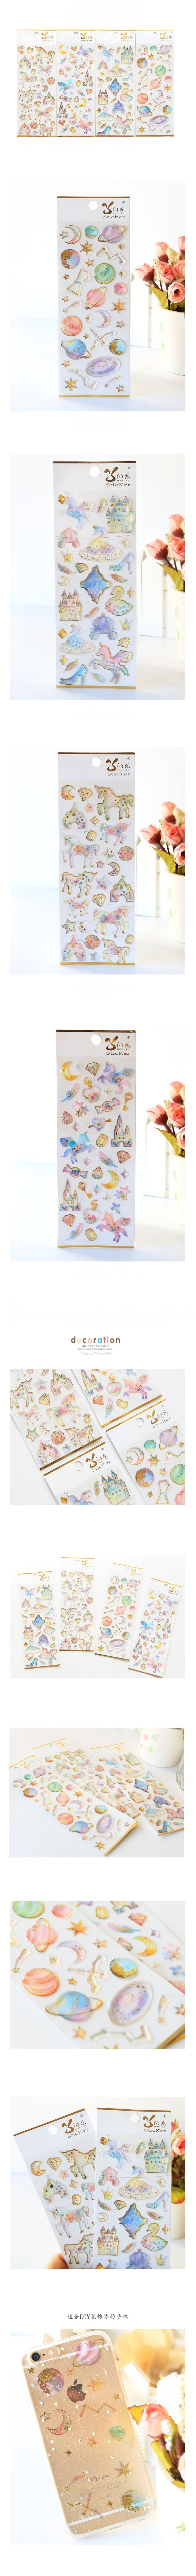 Planet & Unicorn Stickers - Otrio Stationery